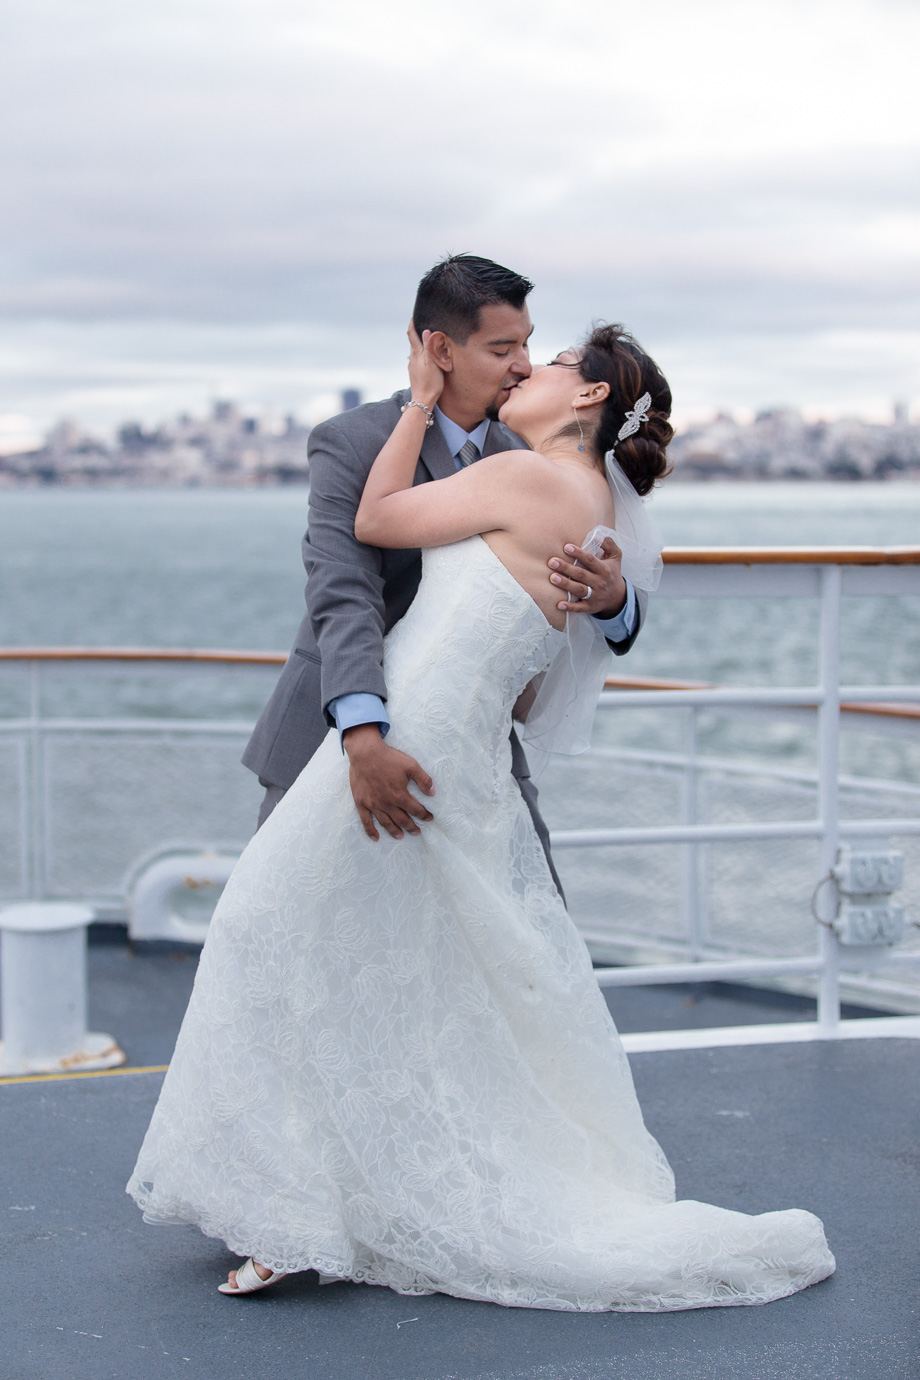 Bride and groom kissing on the deck of the California Hornblower cruise boat